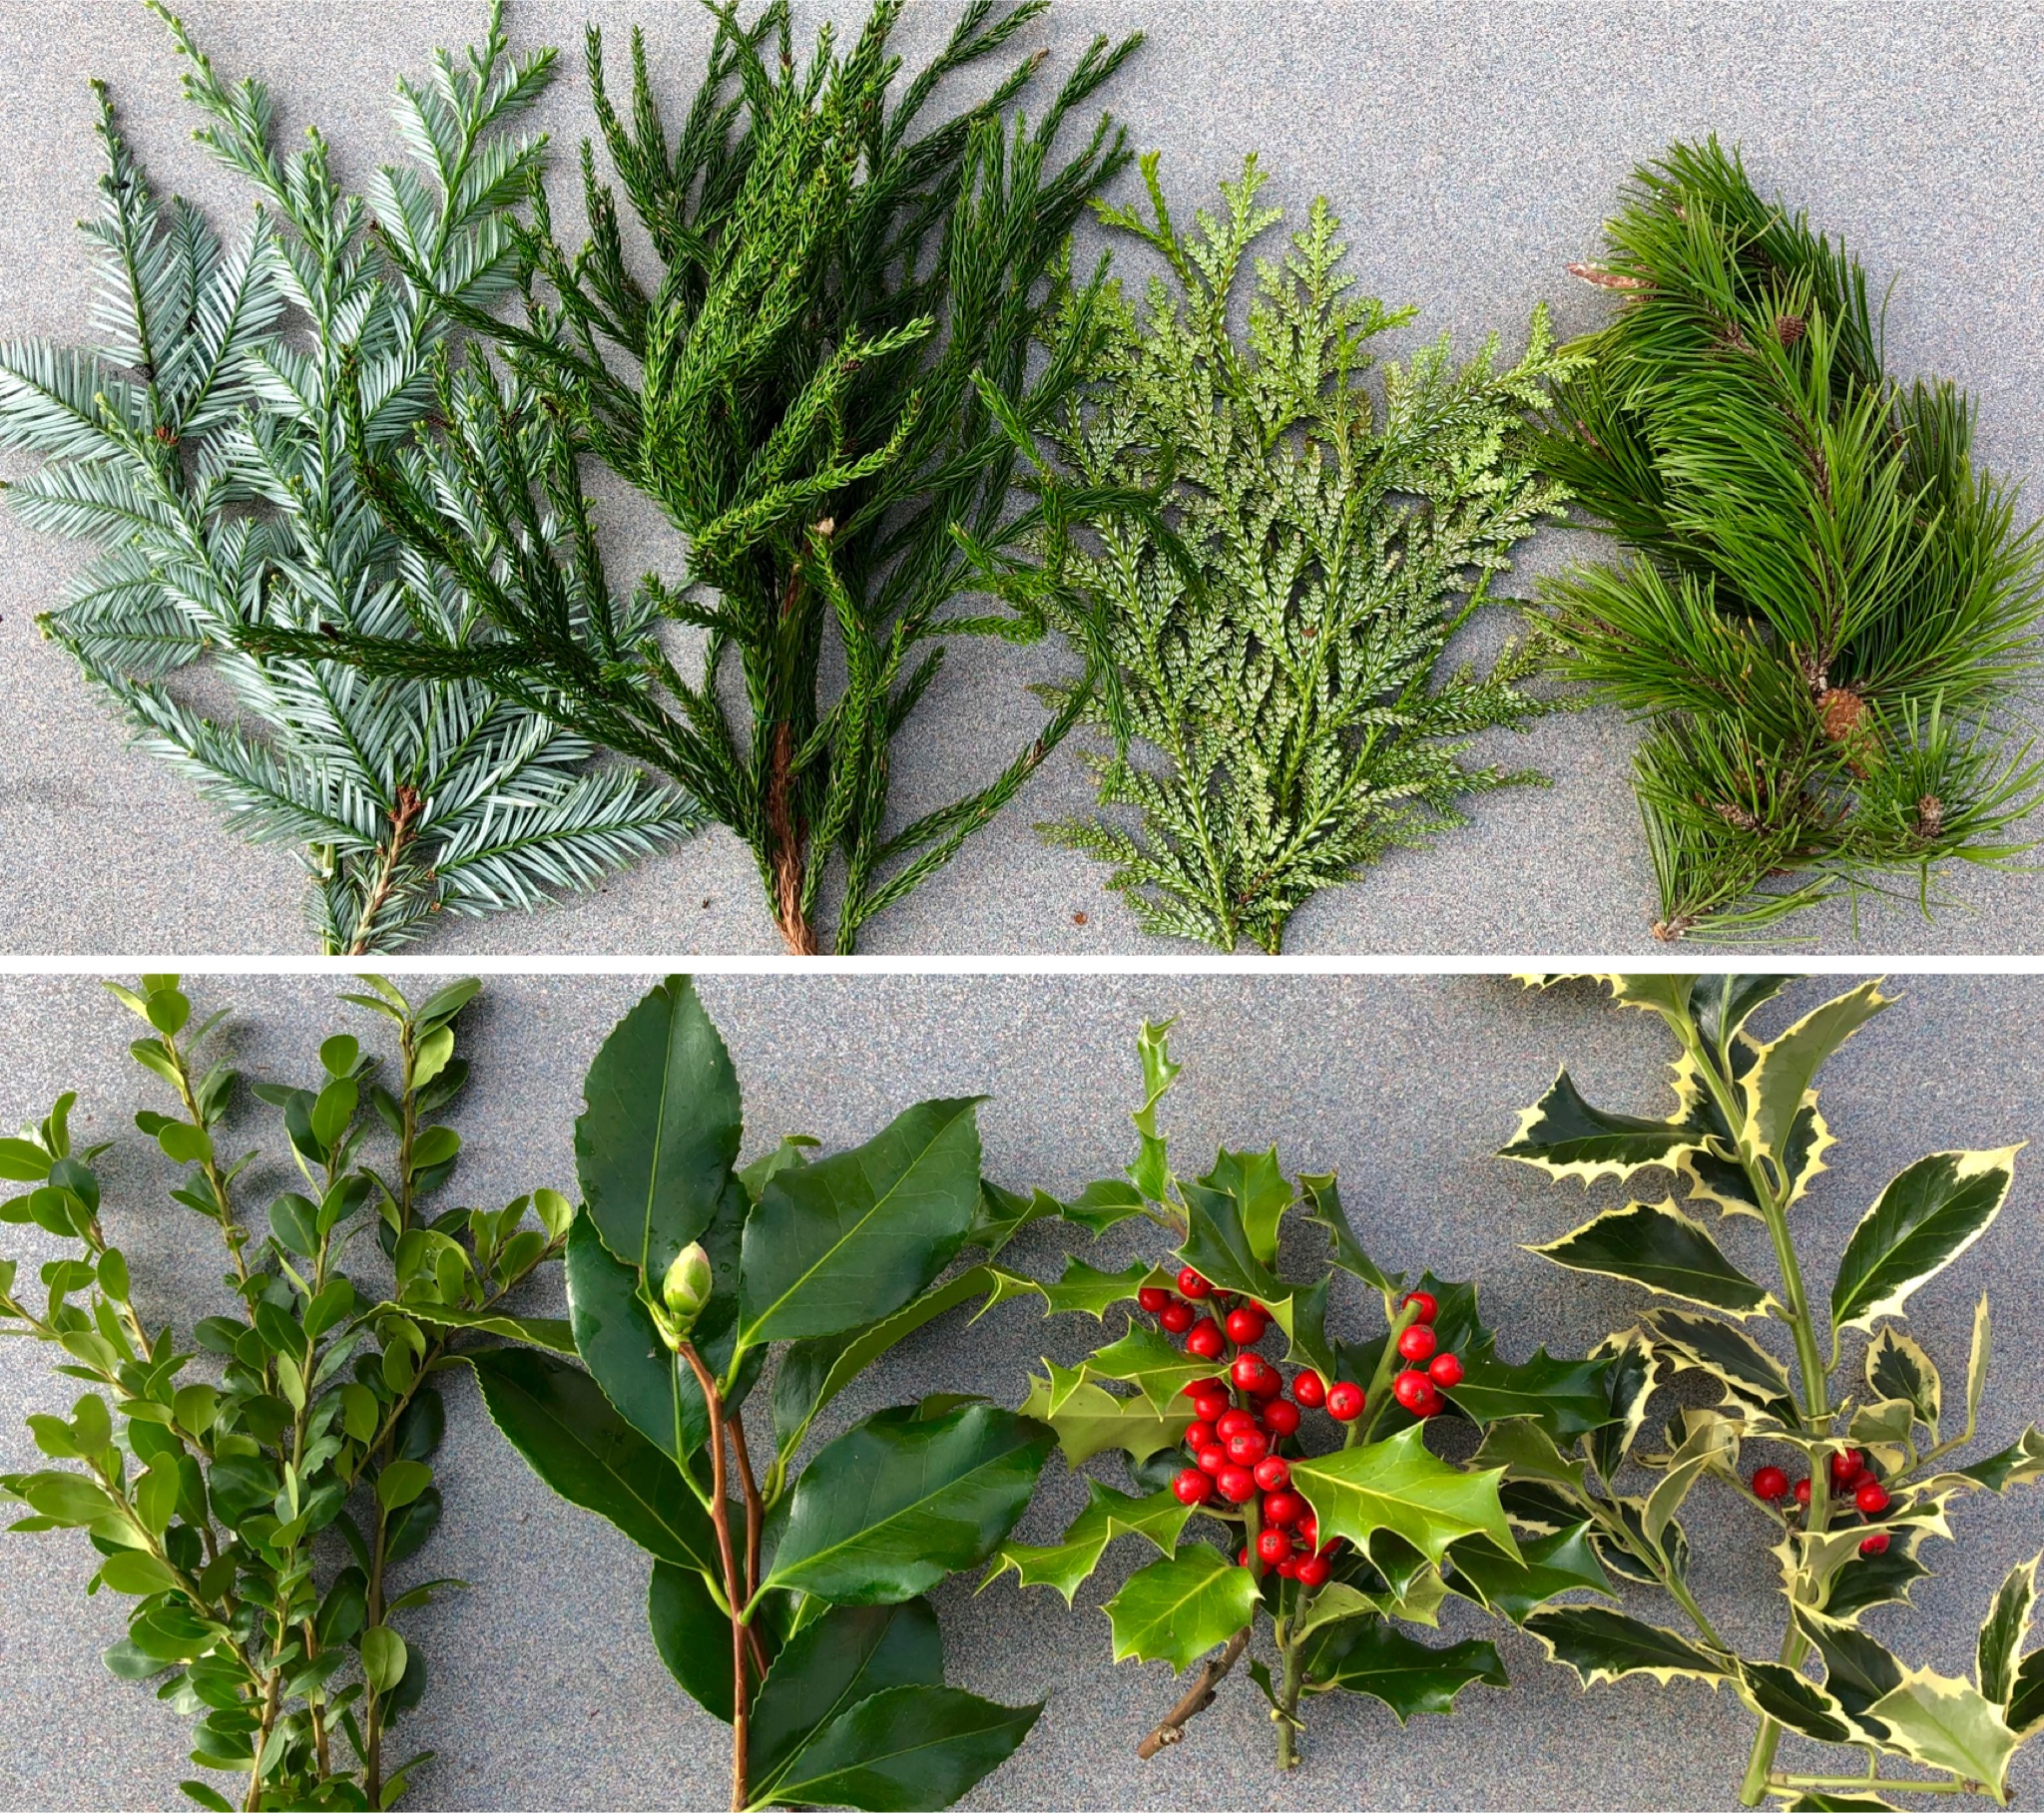 evergreen & broadleaf wreath materials collage2 copy.JPG